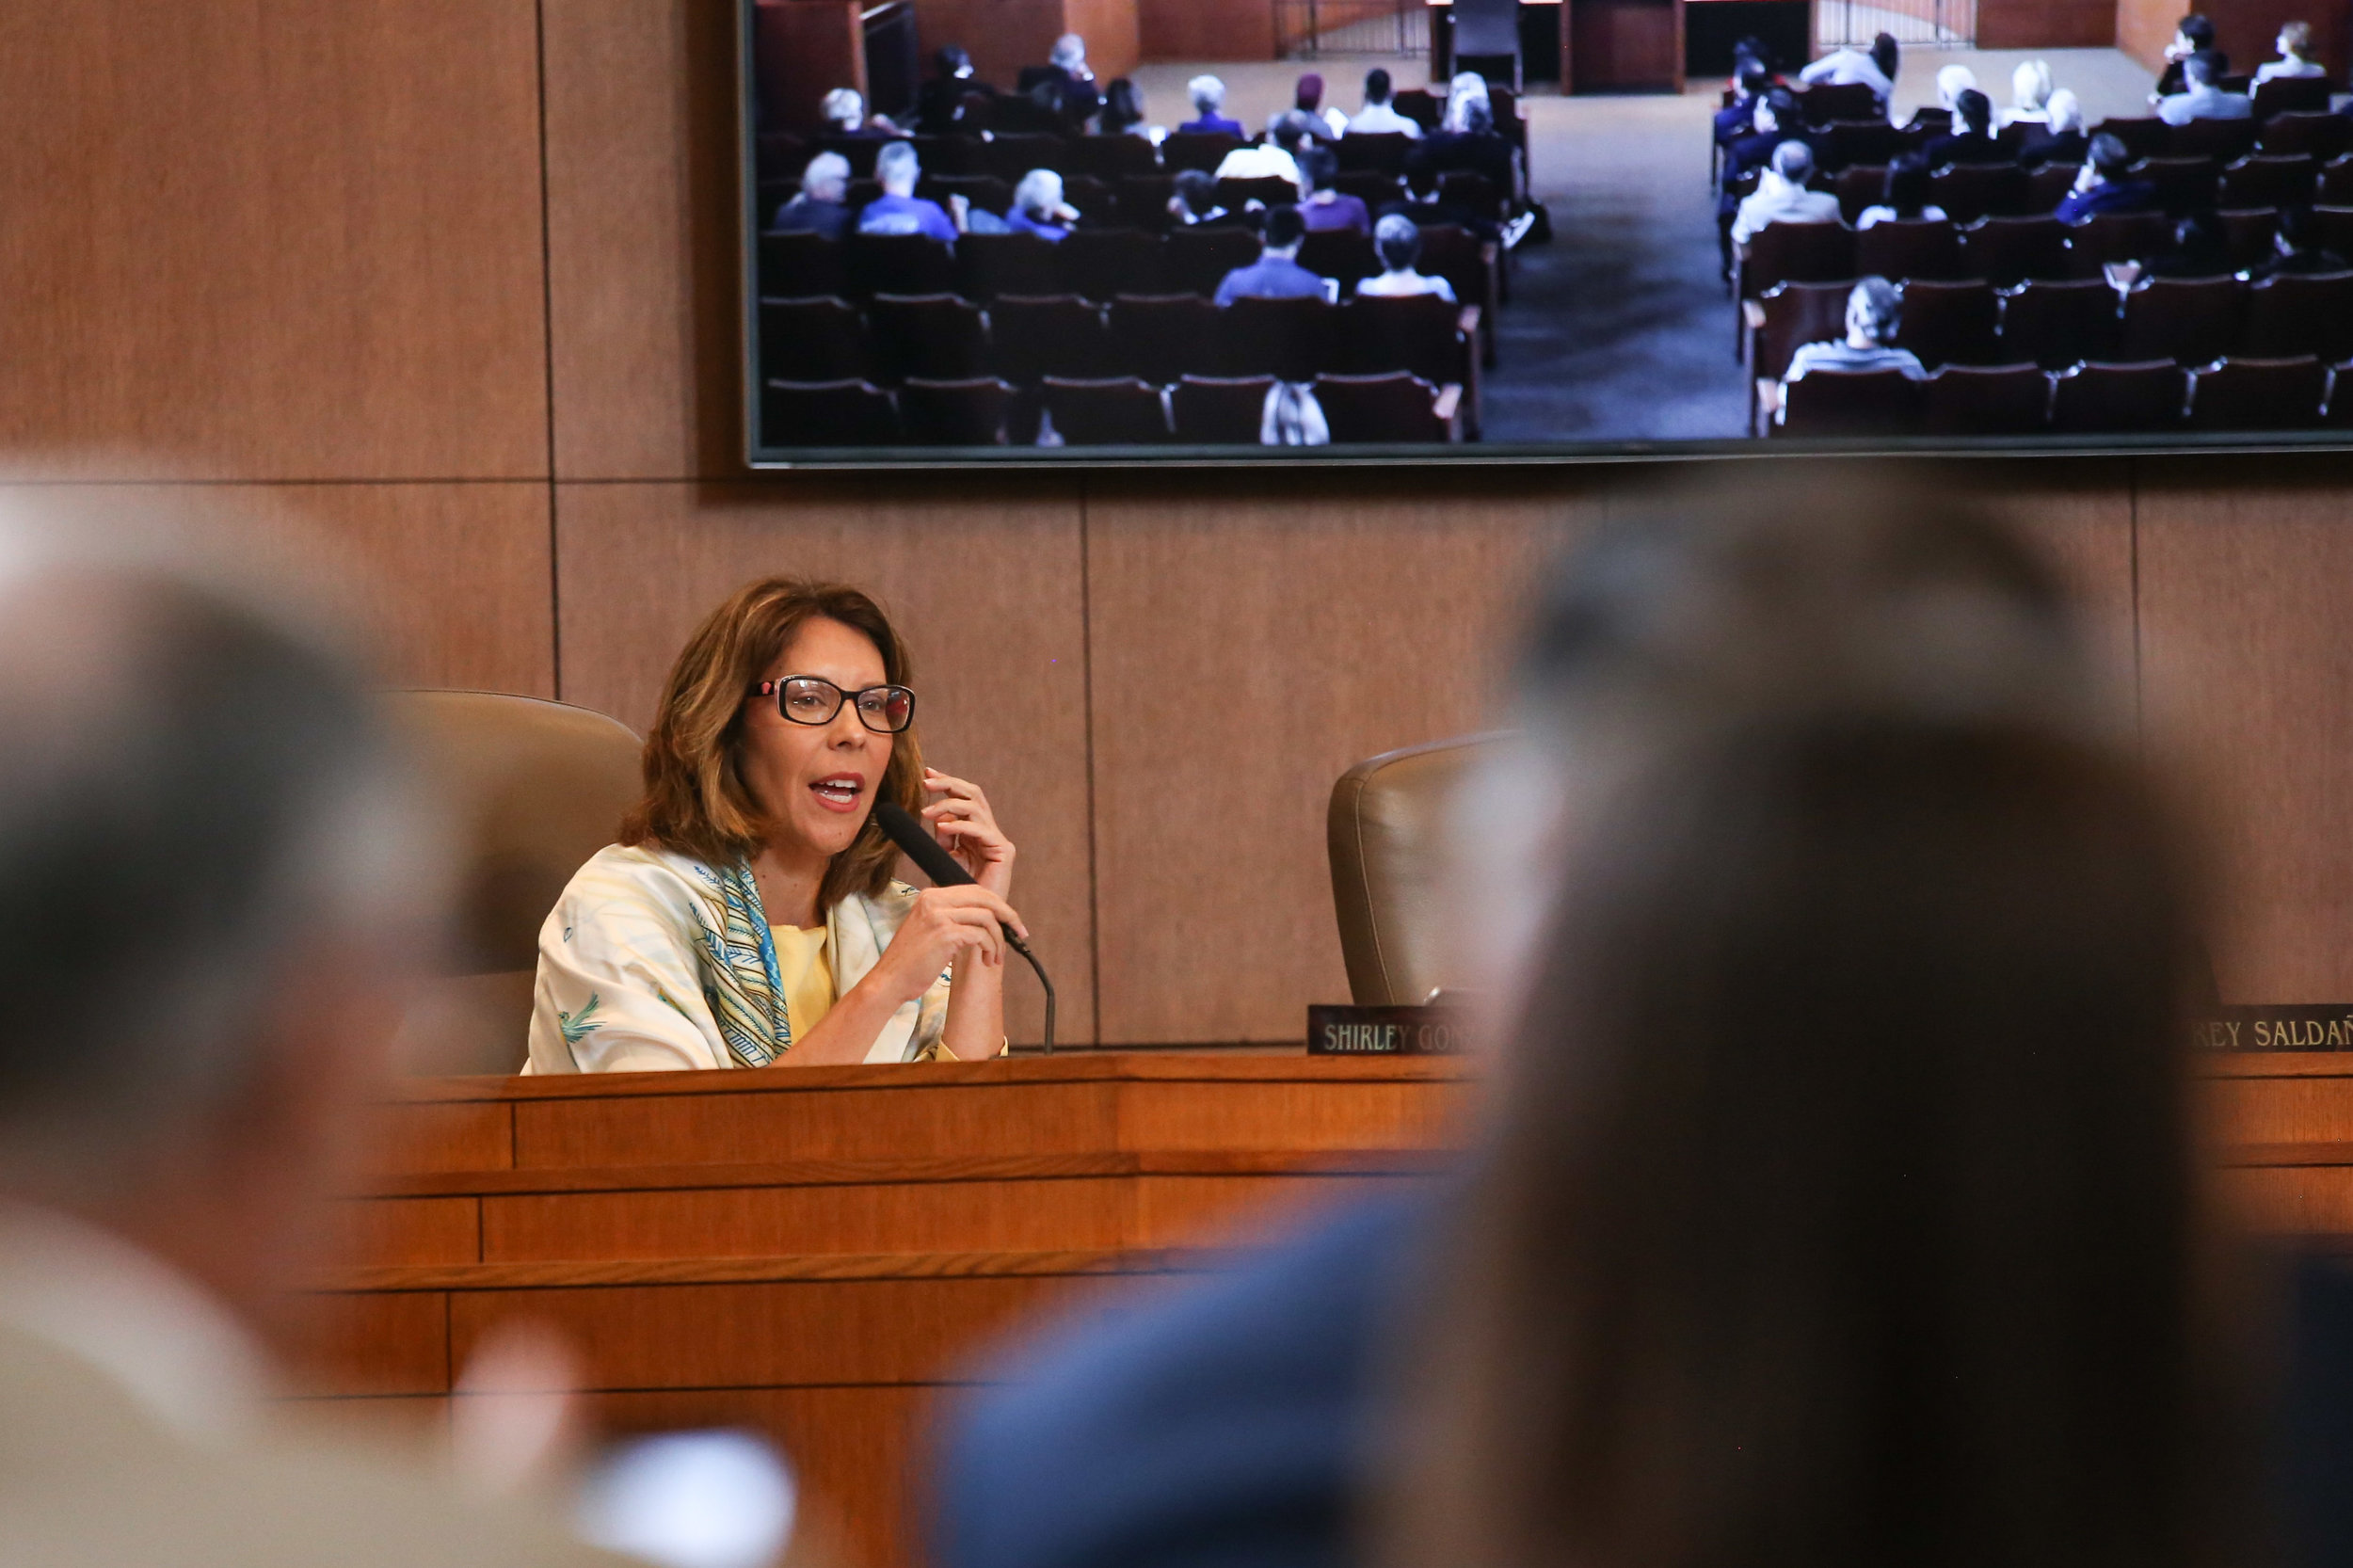 Shirley Gonzales speaks at the A-Session. (Photo by  Jonathan Guajardo )